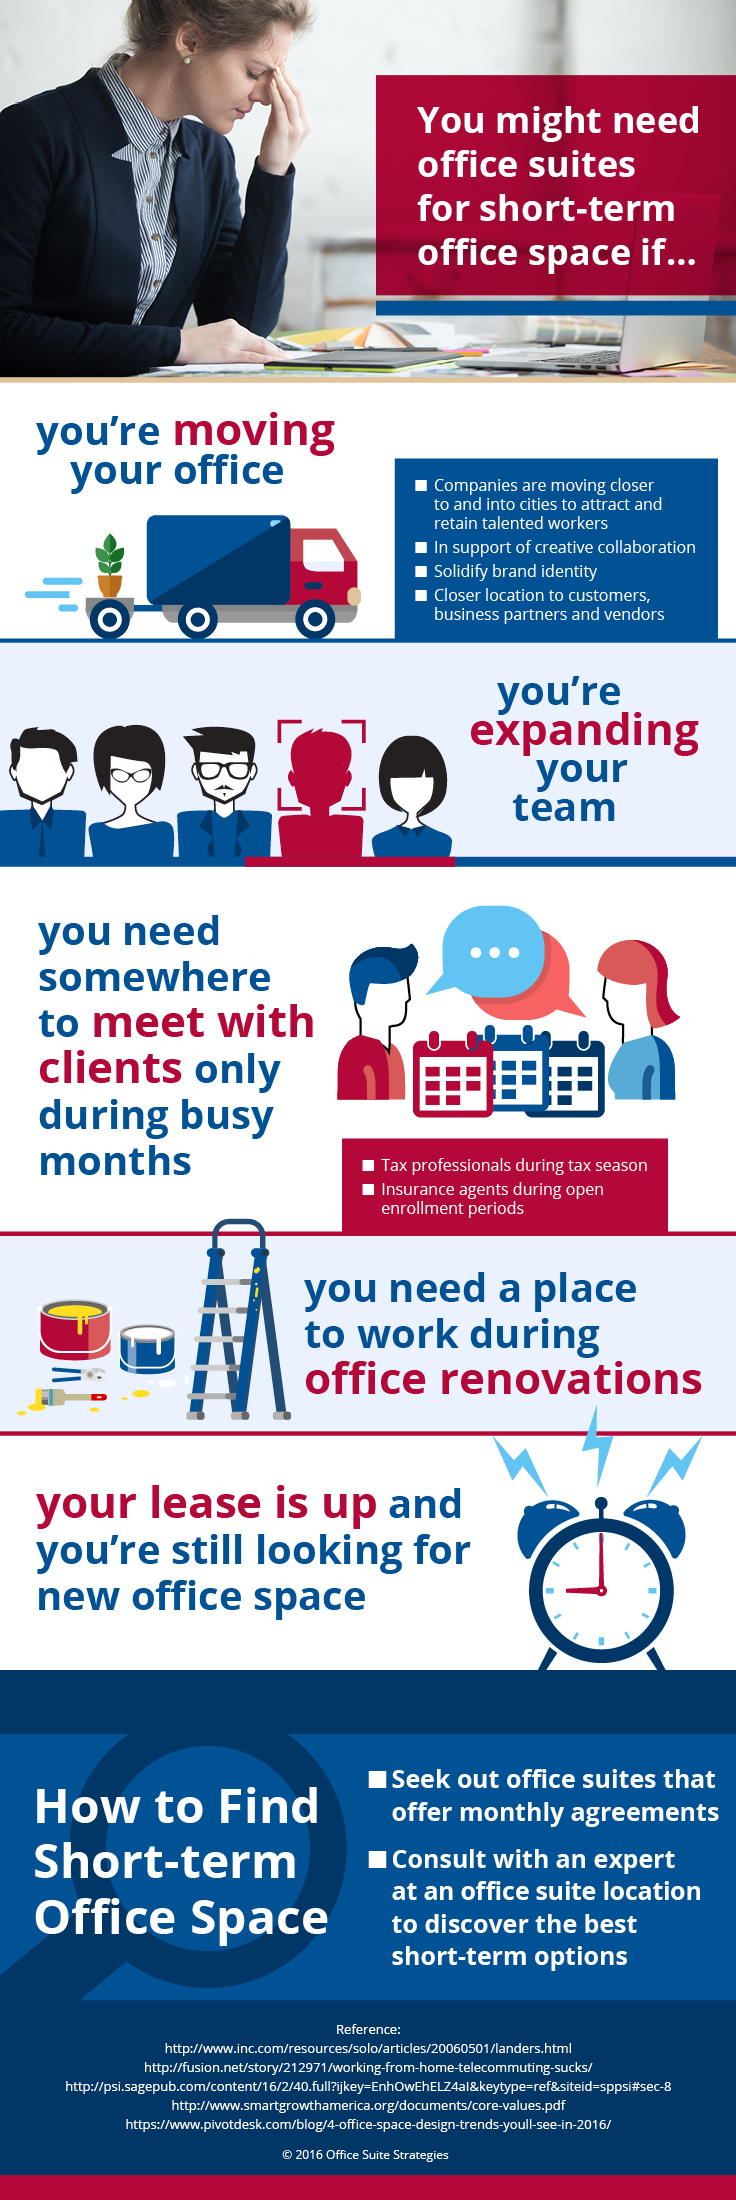 Office suites for short-term office space